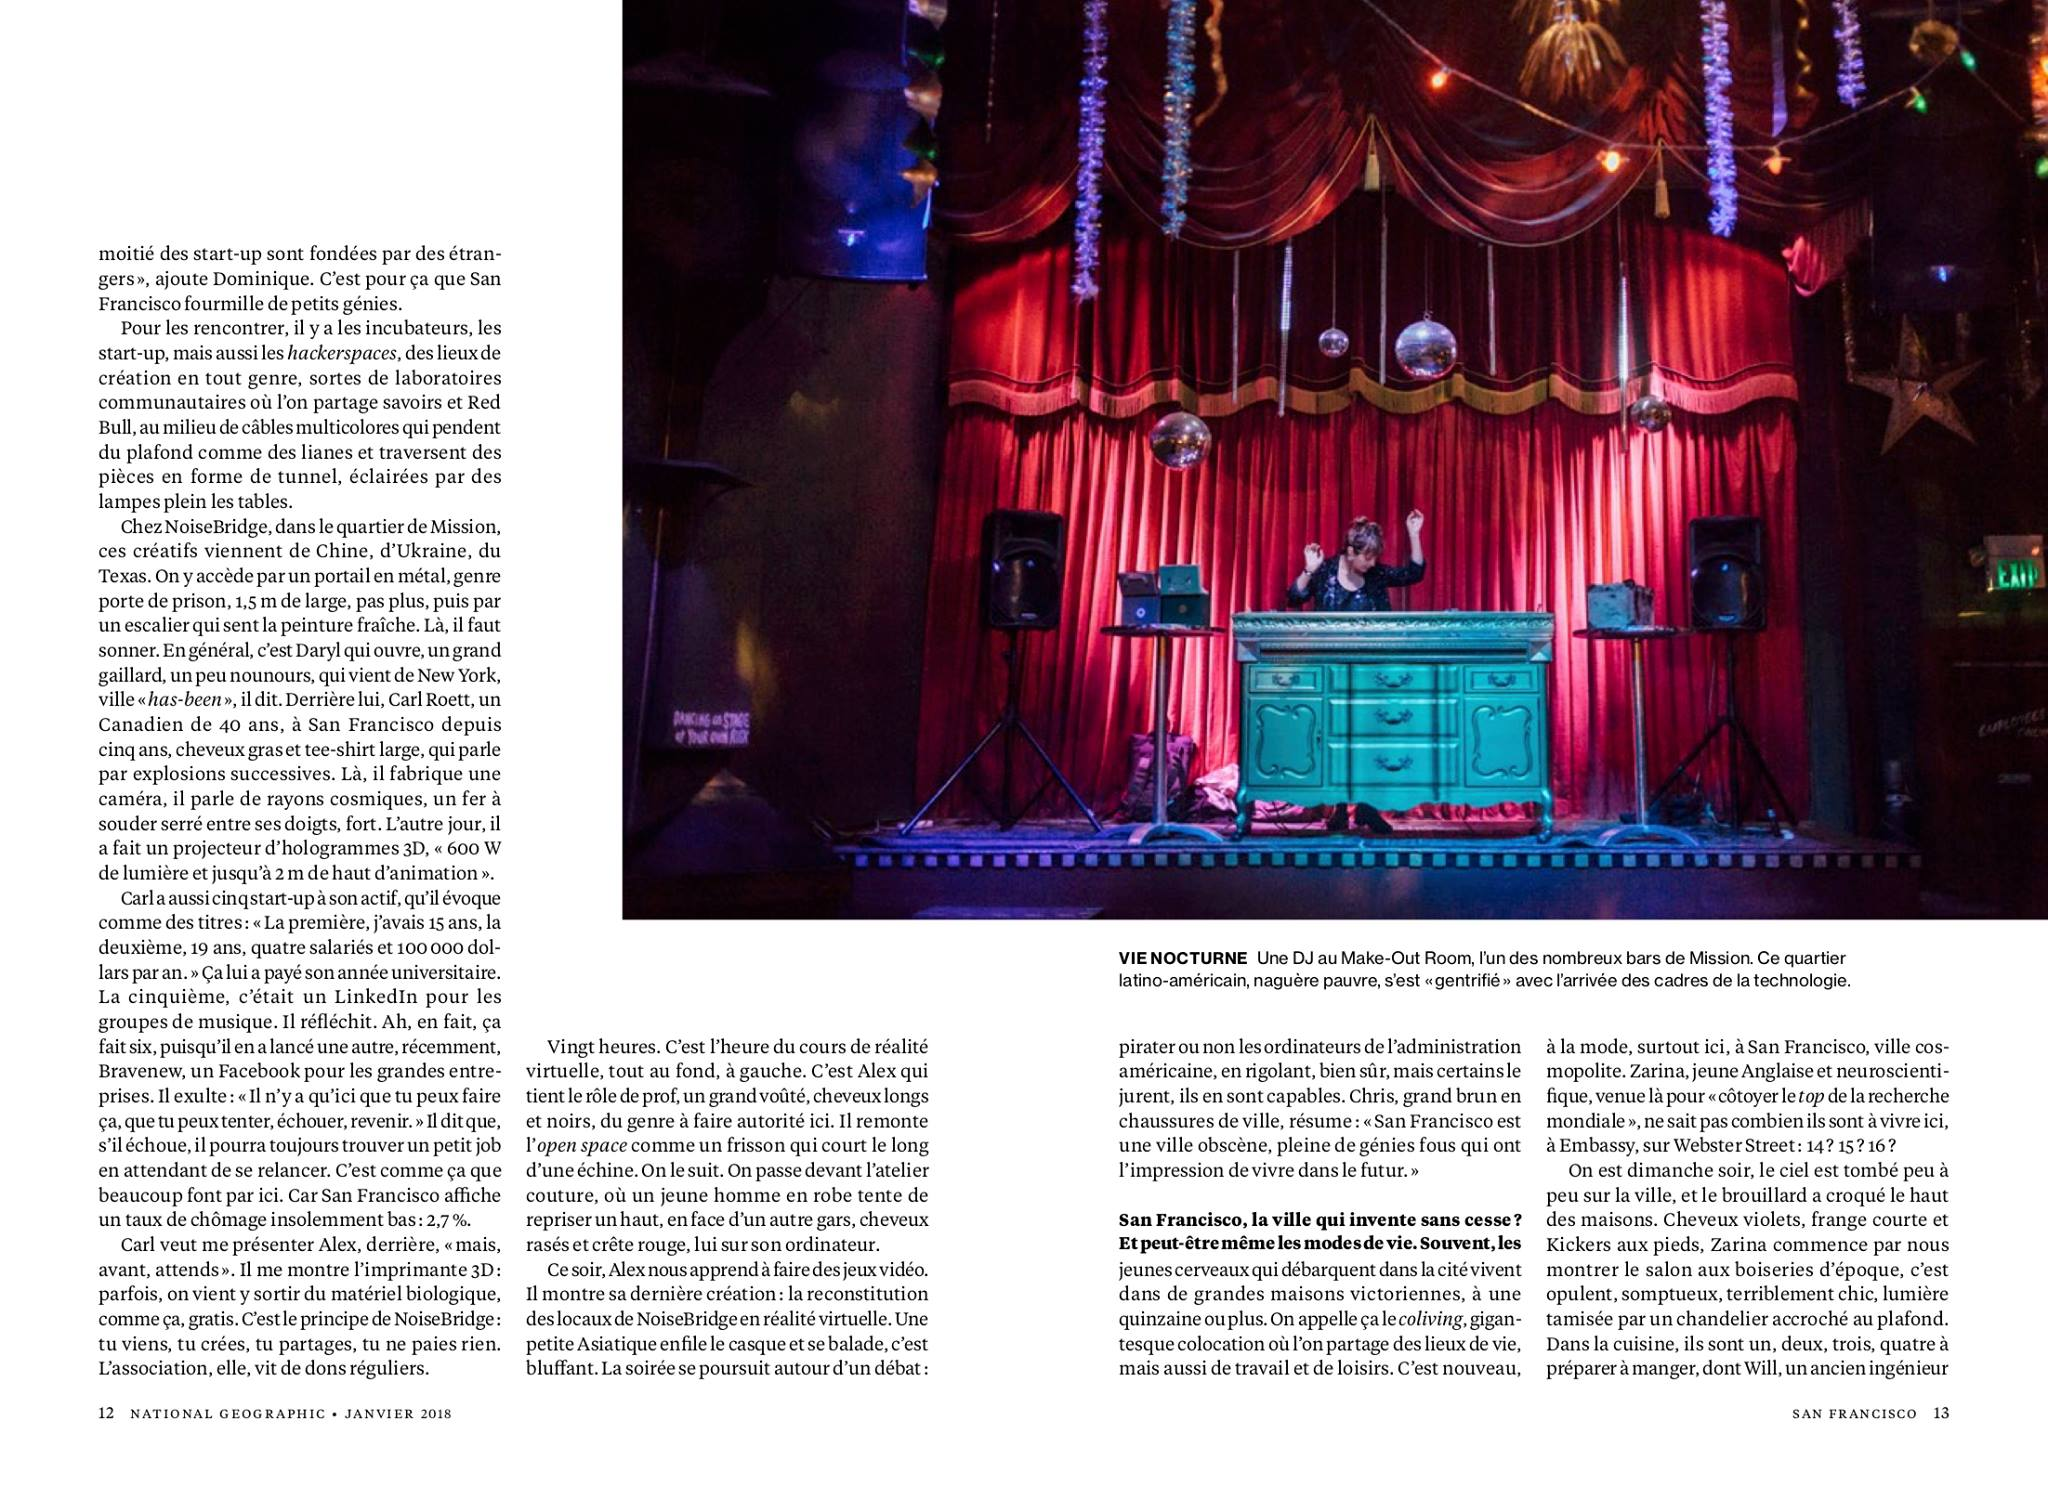 National Geographic France / Cyril Marcilhacy / Janvier 2018